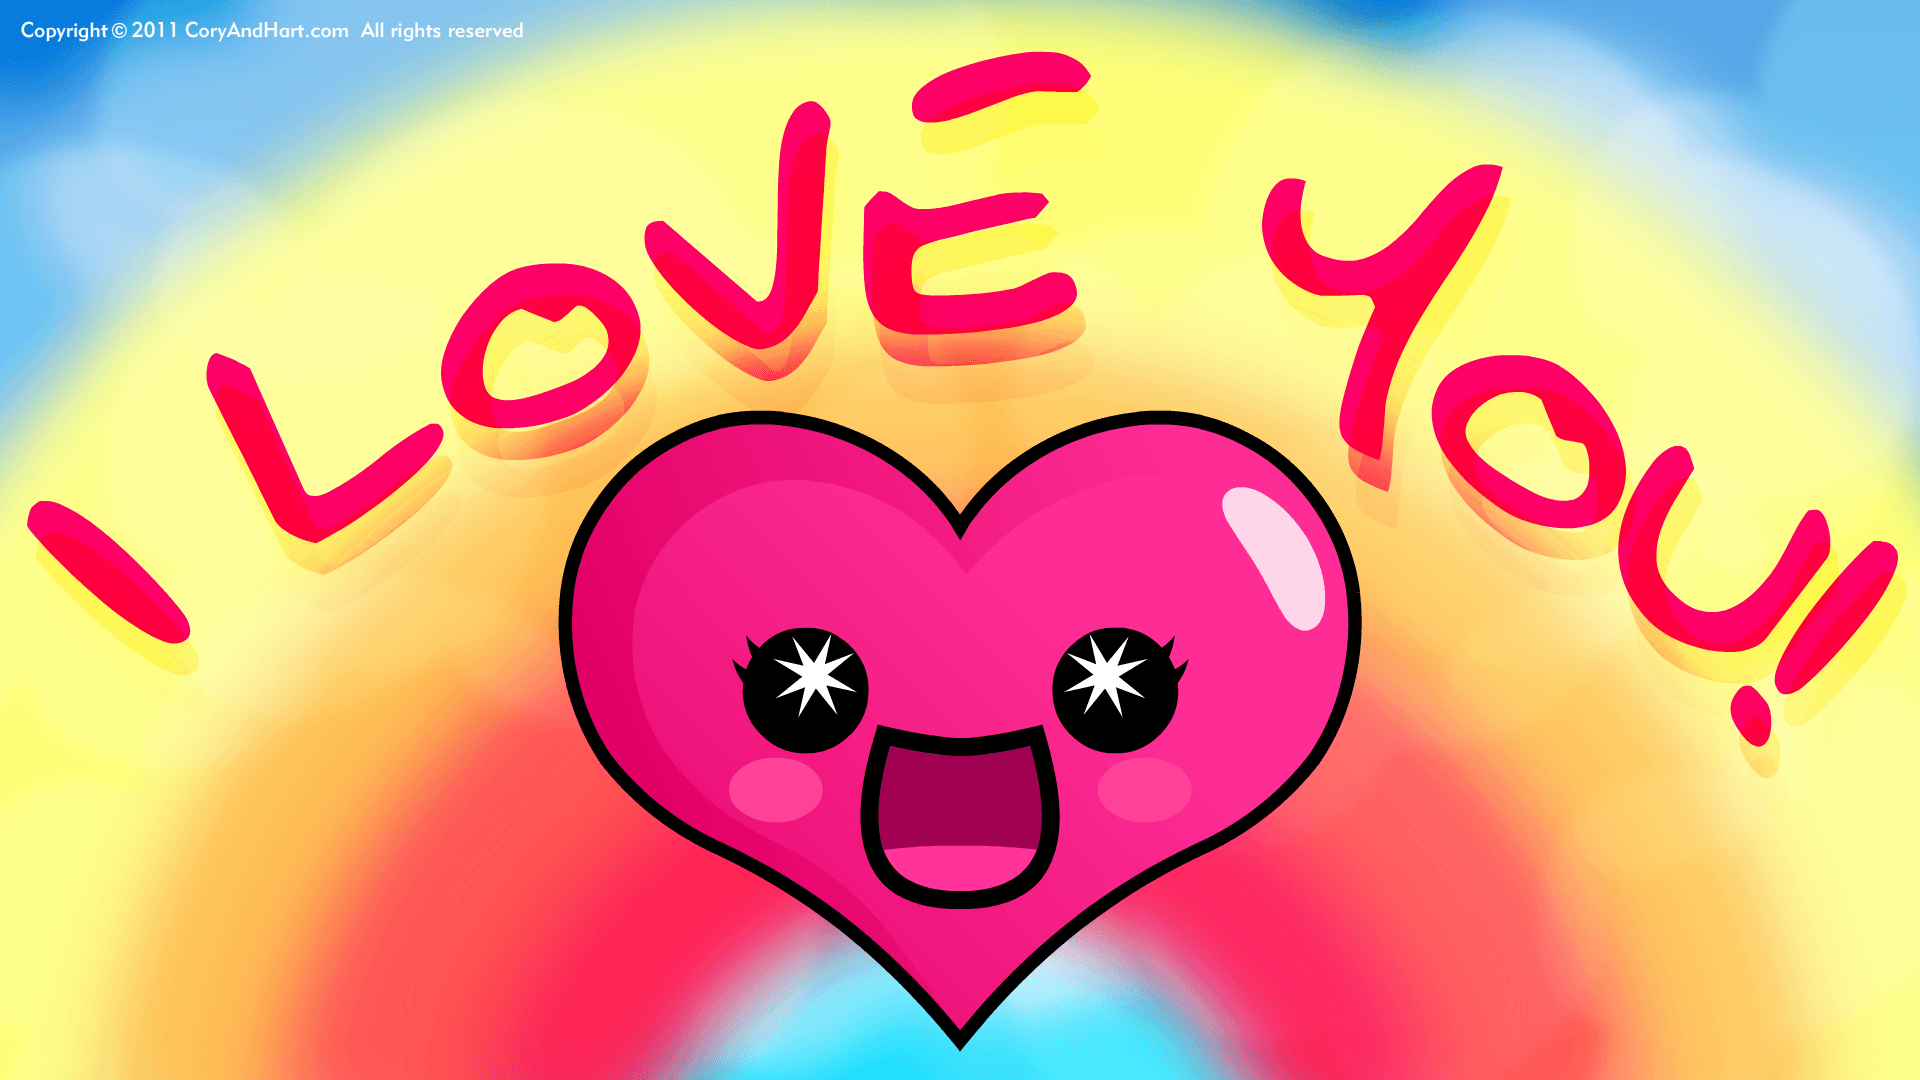 Love comments Wallpaper : cute I Love You Wallpapers - Wallpaper cave